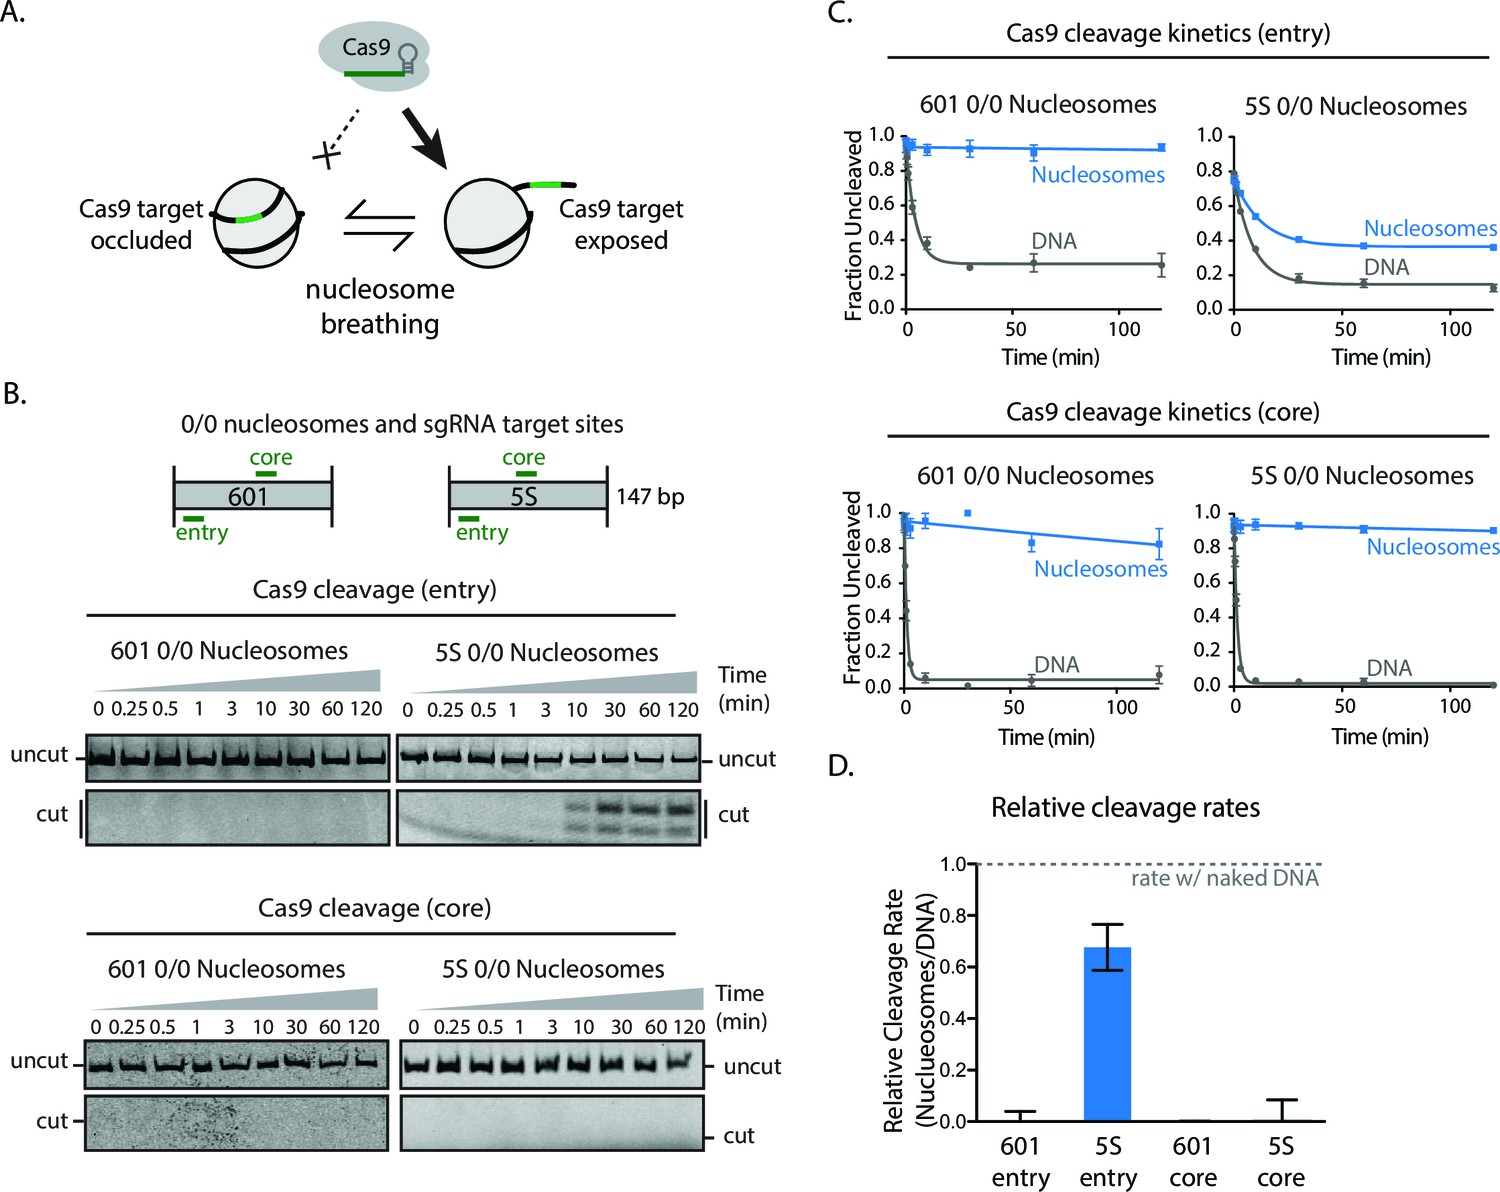 Nucleosome Breathing And Remodeling Constrain Crispr Cas9 Function No Disassemble Stephanie Because To Be Disassembled Is Dead That Higher Nucleosomal Dynamics Enhance Cleavage